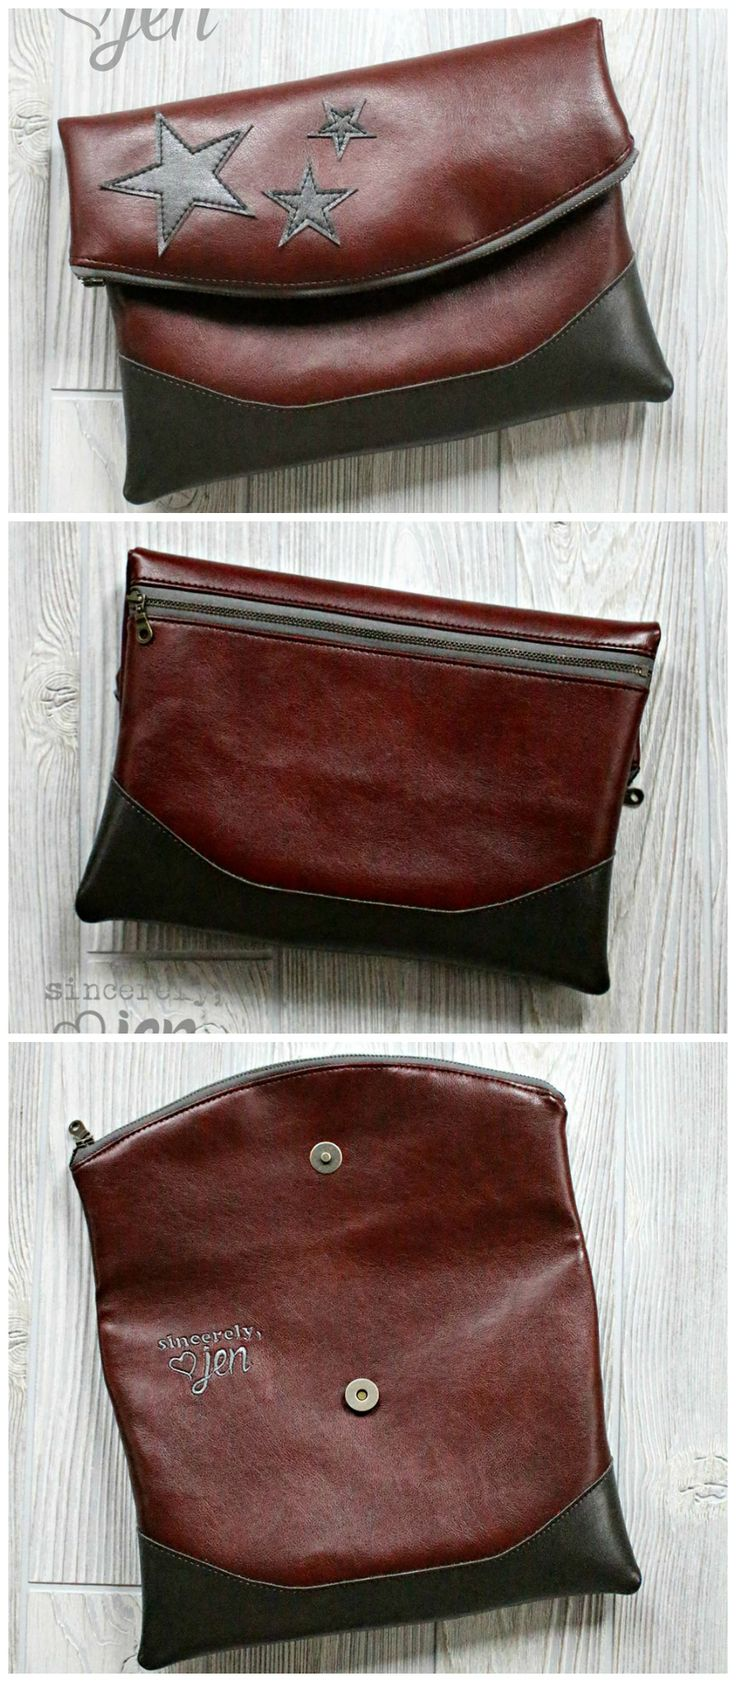 17 best ideas about leather bag pattern on pinterest